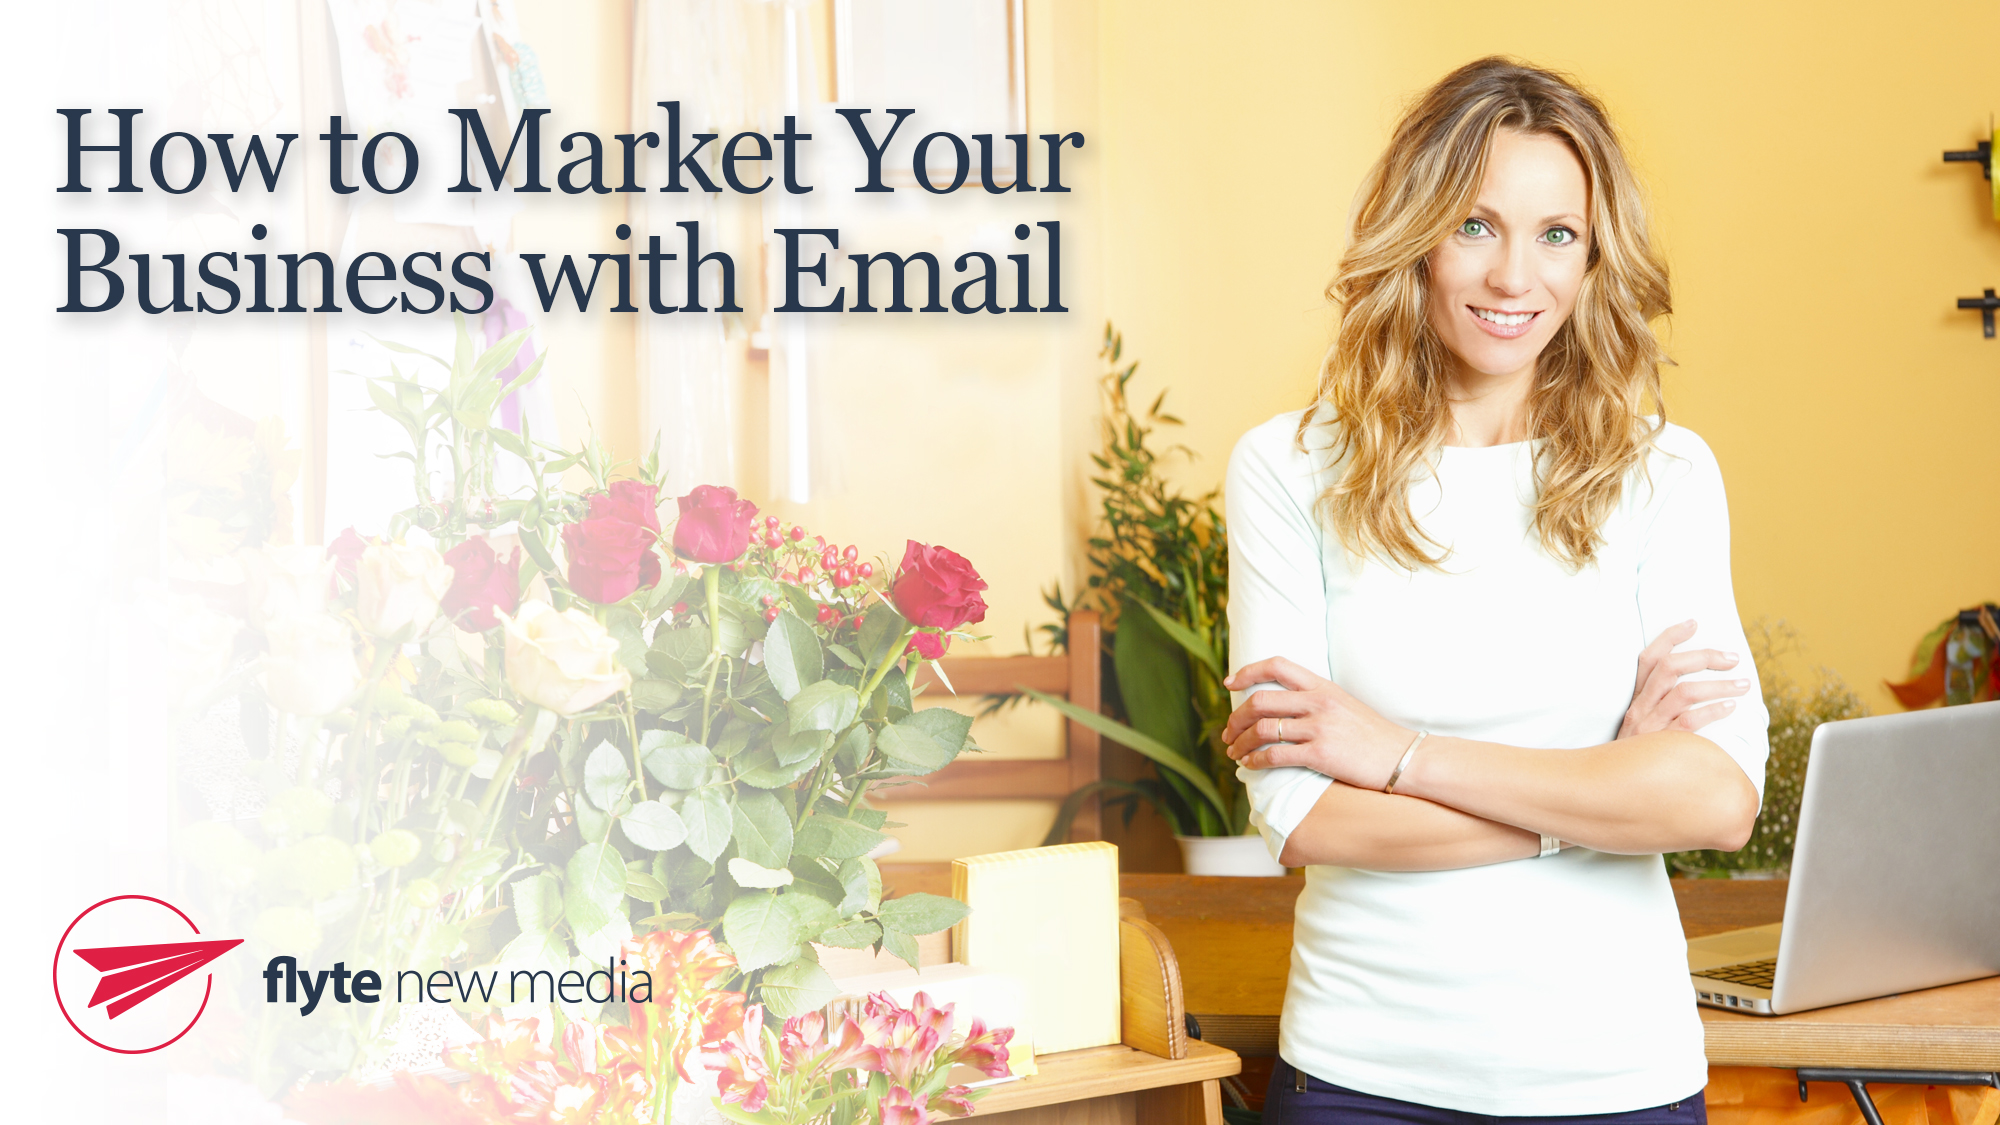 How to Market Your Business with Email